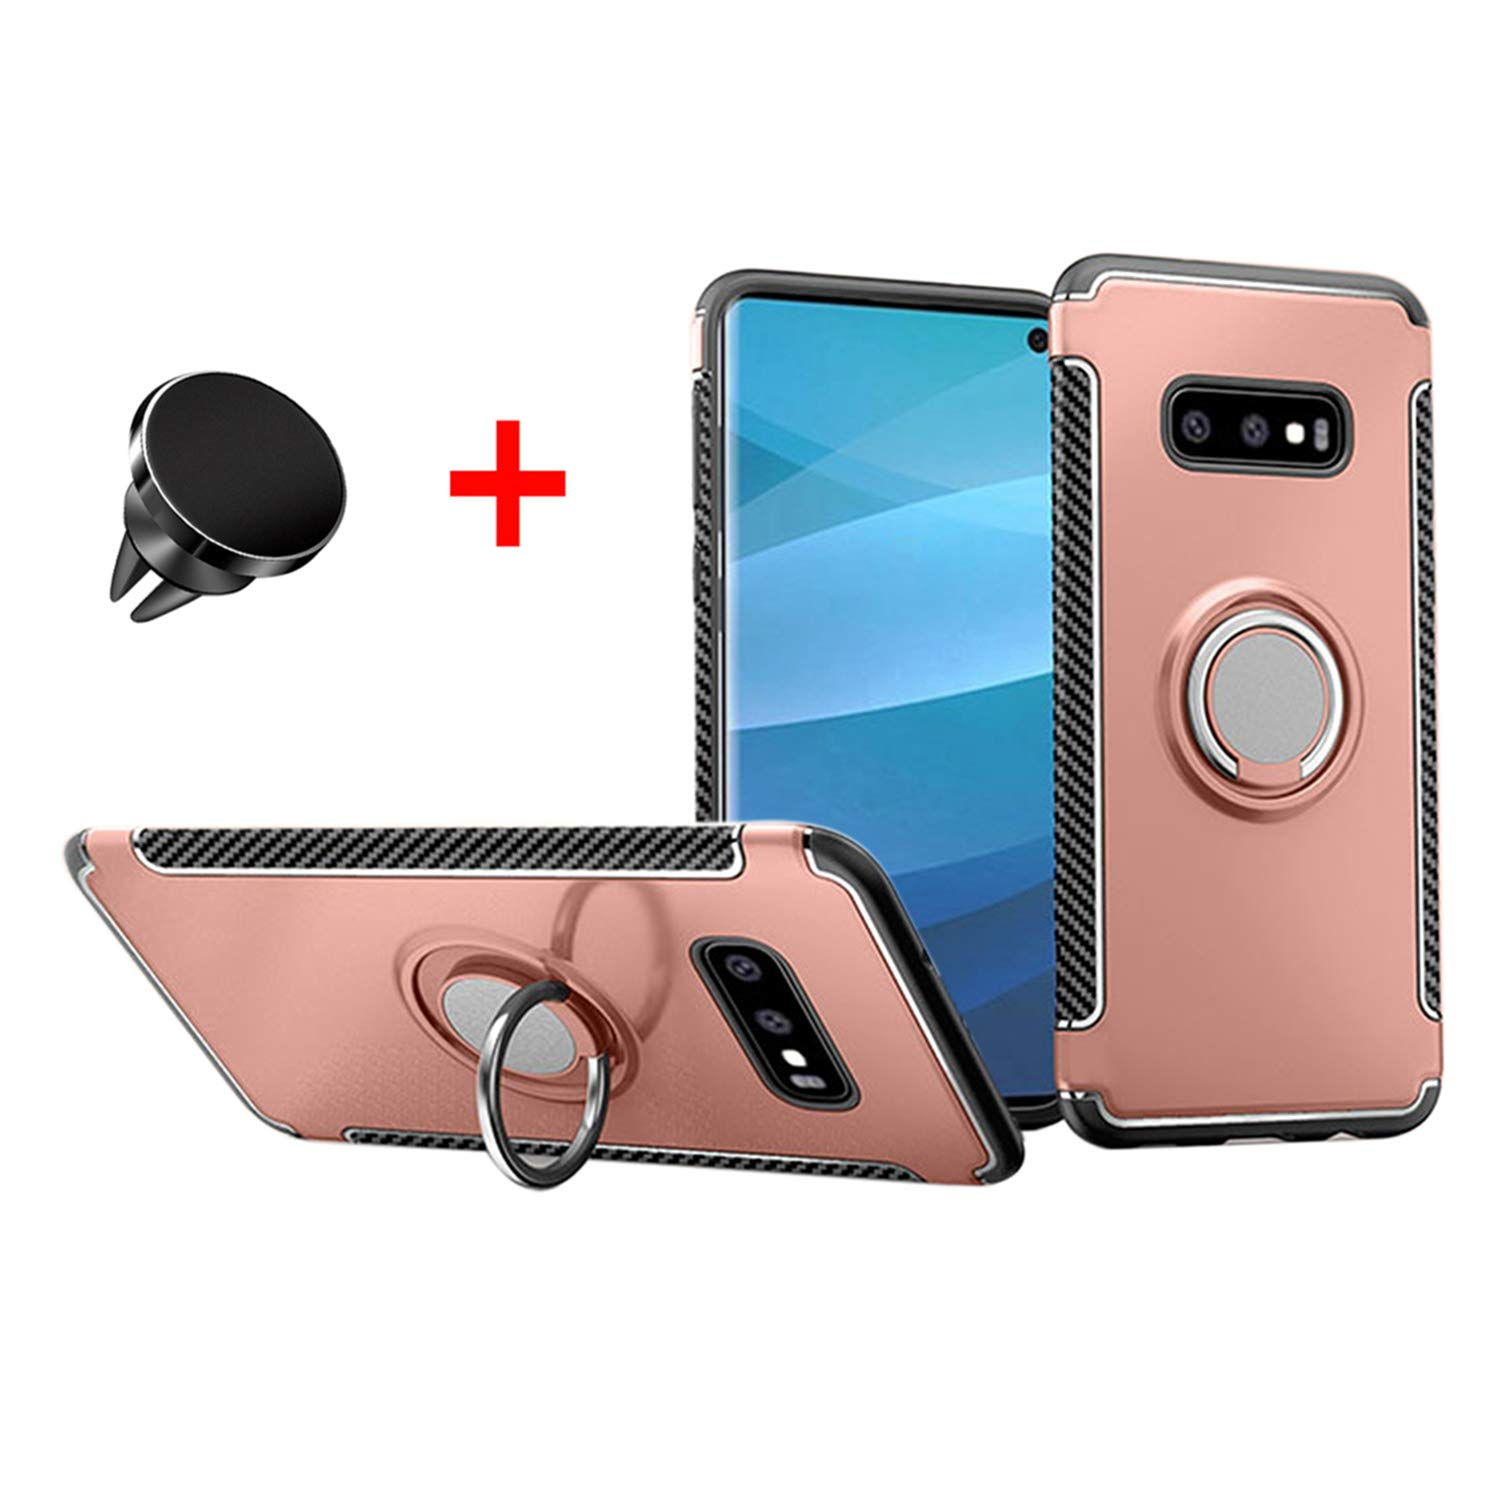 Woskko Galaxy S10e case, Hybrid TPU+PC Built-in Car Magnetic Suction Bracket Finger Ring Shockproof Case with car Magnetic Holder (Rose Gold+Car Holder)